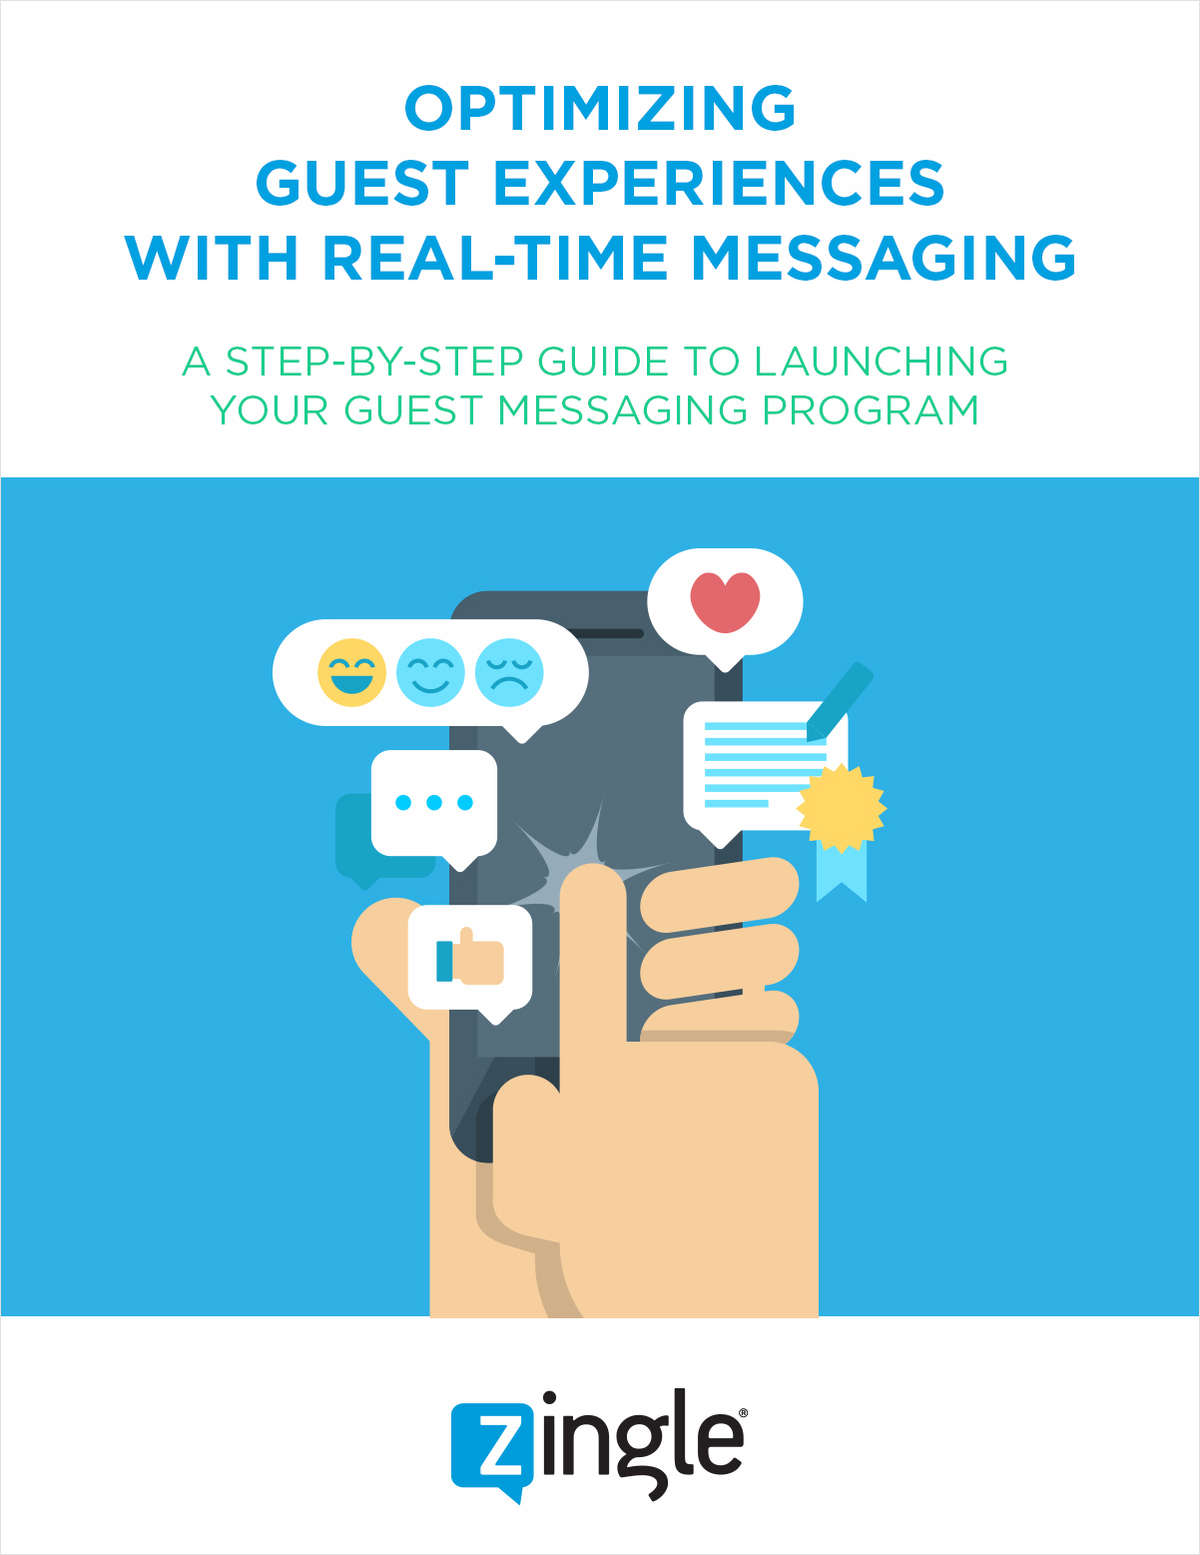 Optimizing Guest Experiences with Real-time Messaging